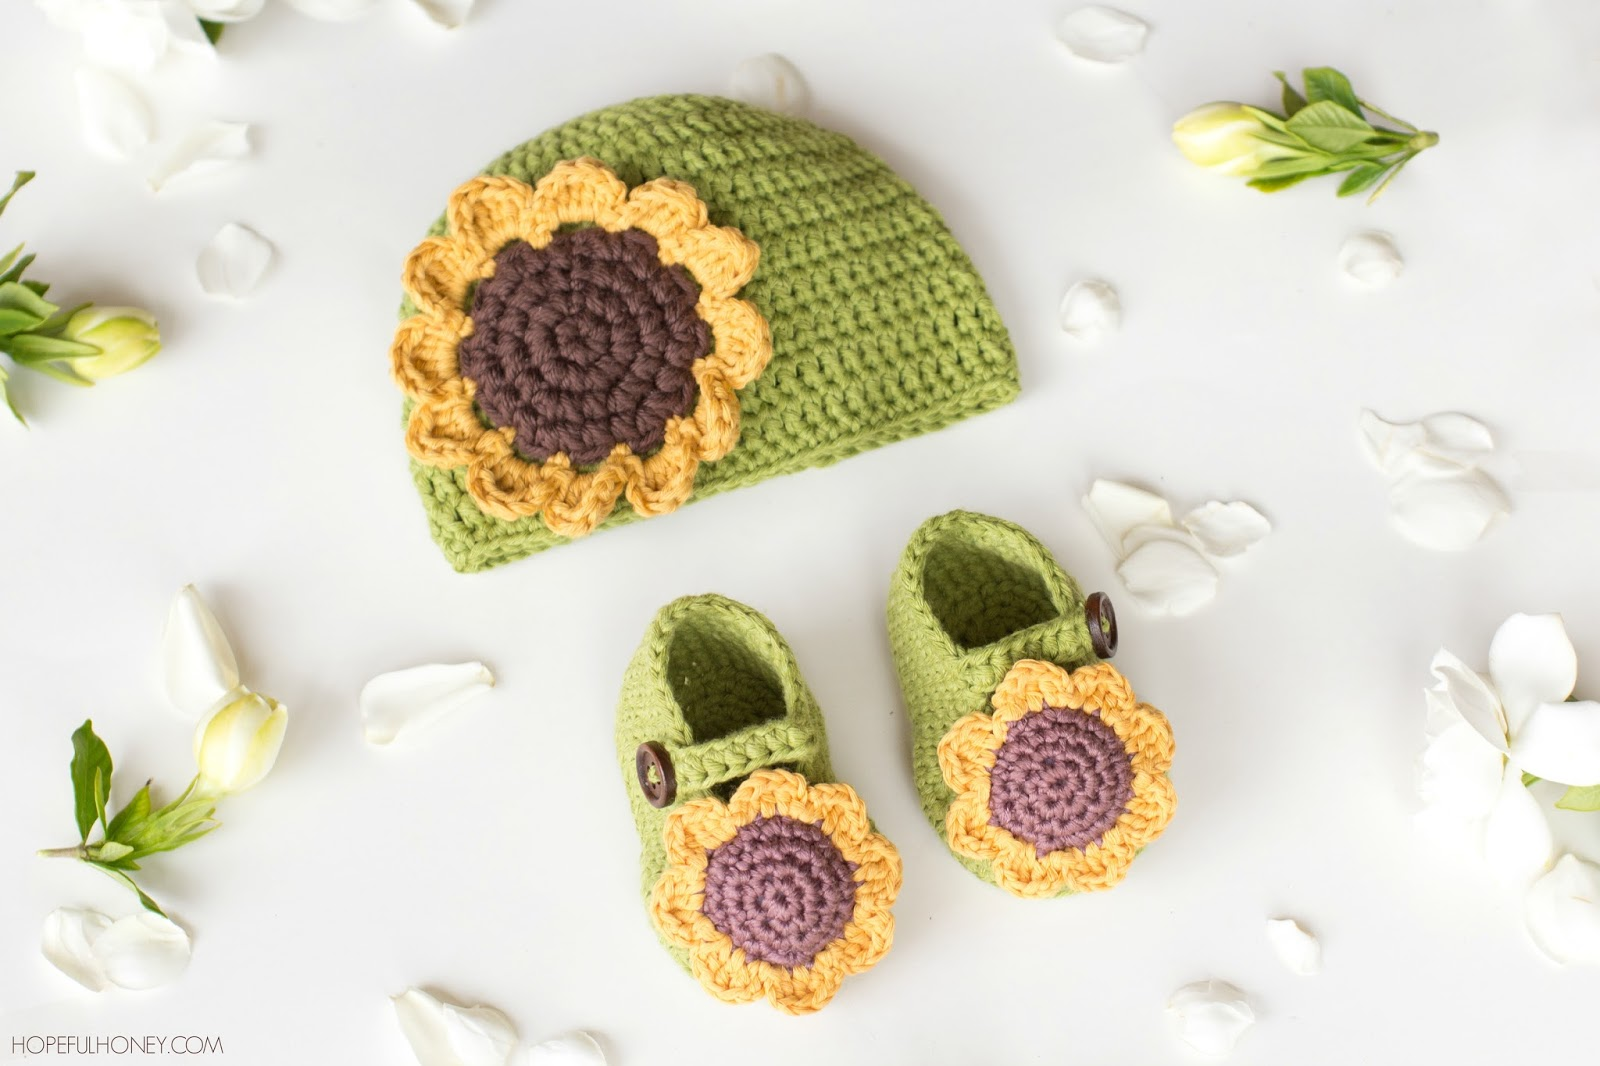 Free crochet pattern for sunflower hat dancox for hopeful honey craft crochet create sunflower baby hat free crochet pattern bankloansurffo Image collections